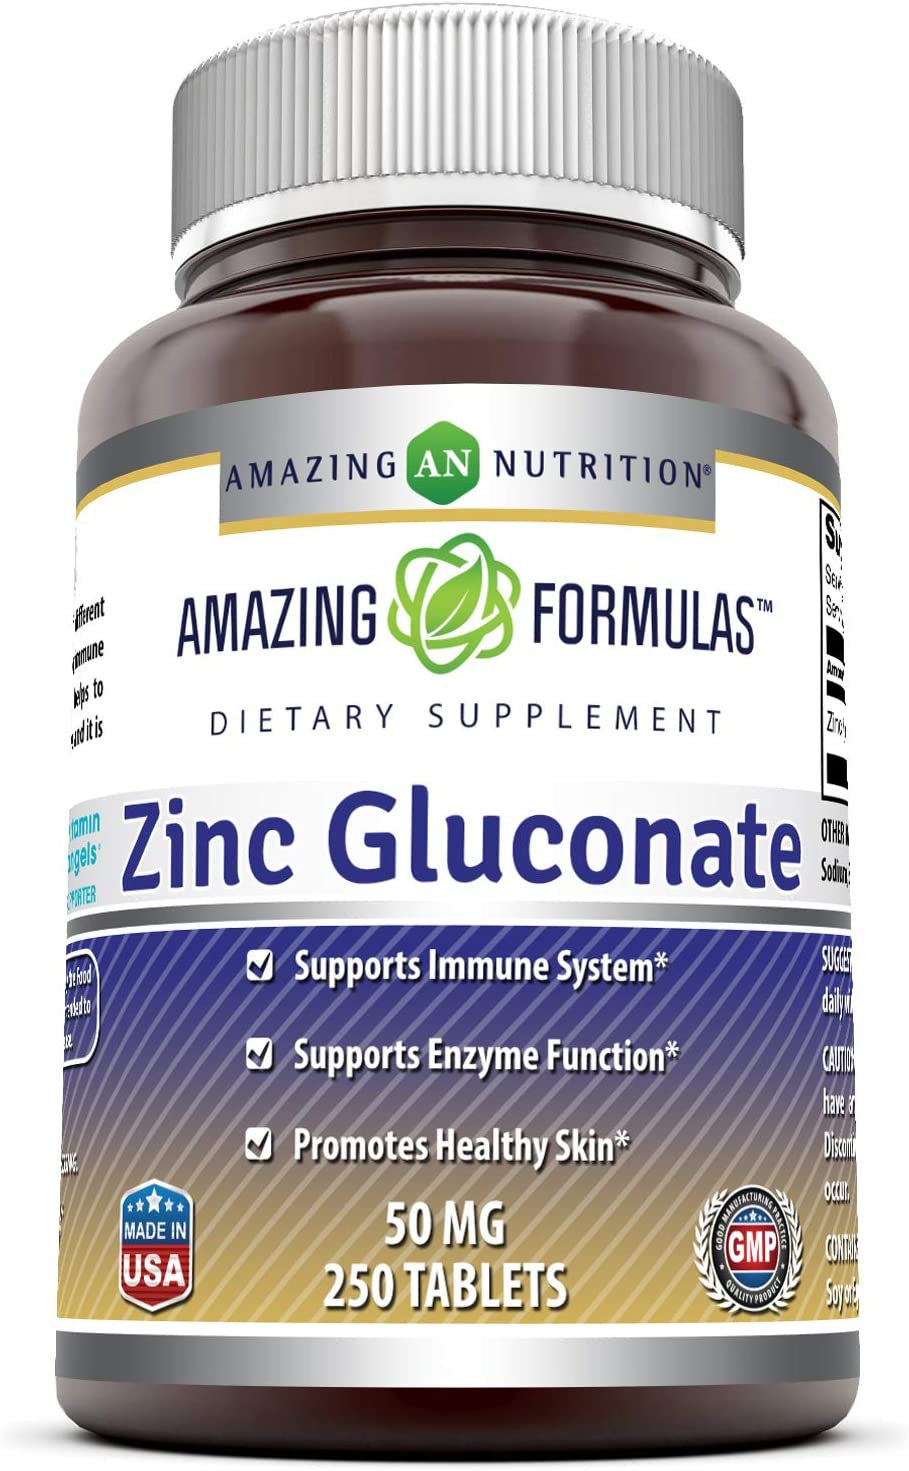 Amazing Formulas Zinc Gluconate - 50 mg, 250 Tablets (Non-GMO,Gluten Free) - Supports Immune System - Supports Enzymes Function - Promotes Healthy Skin.